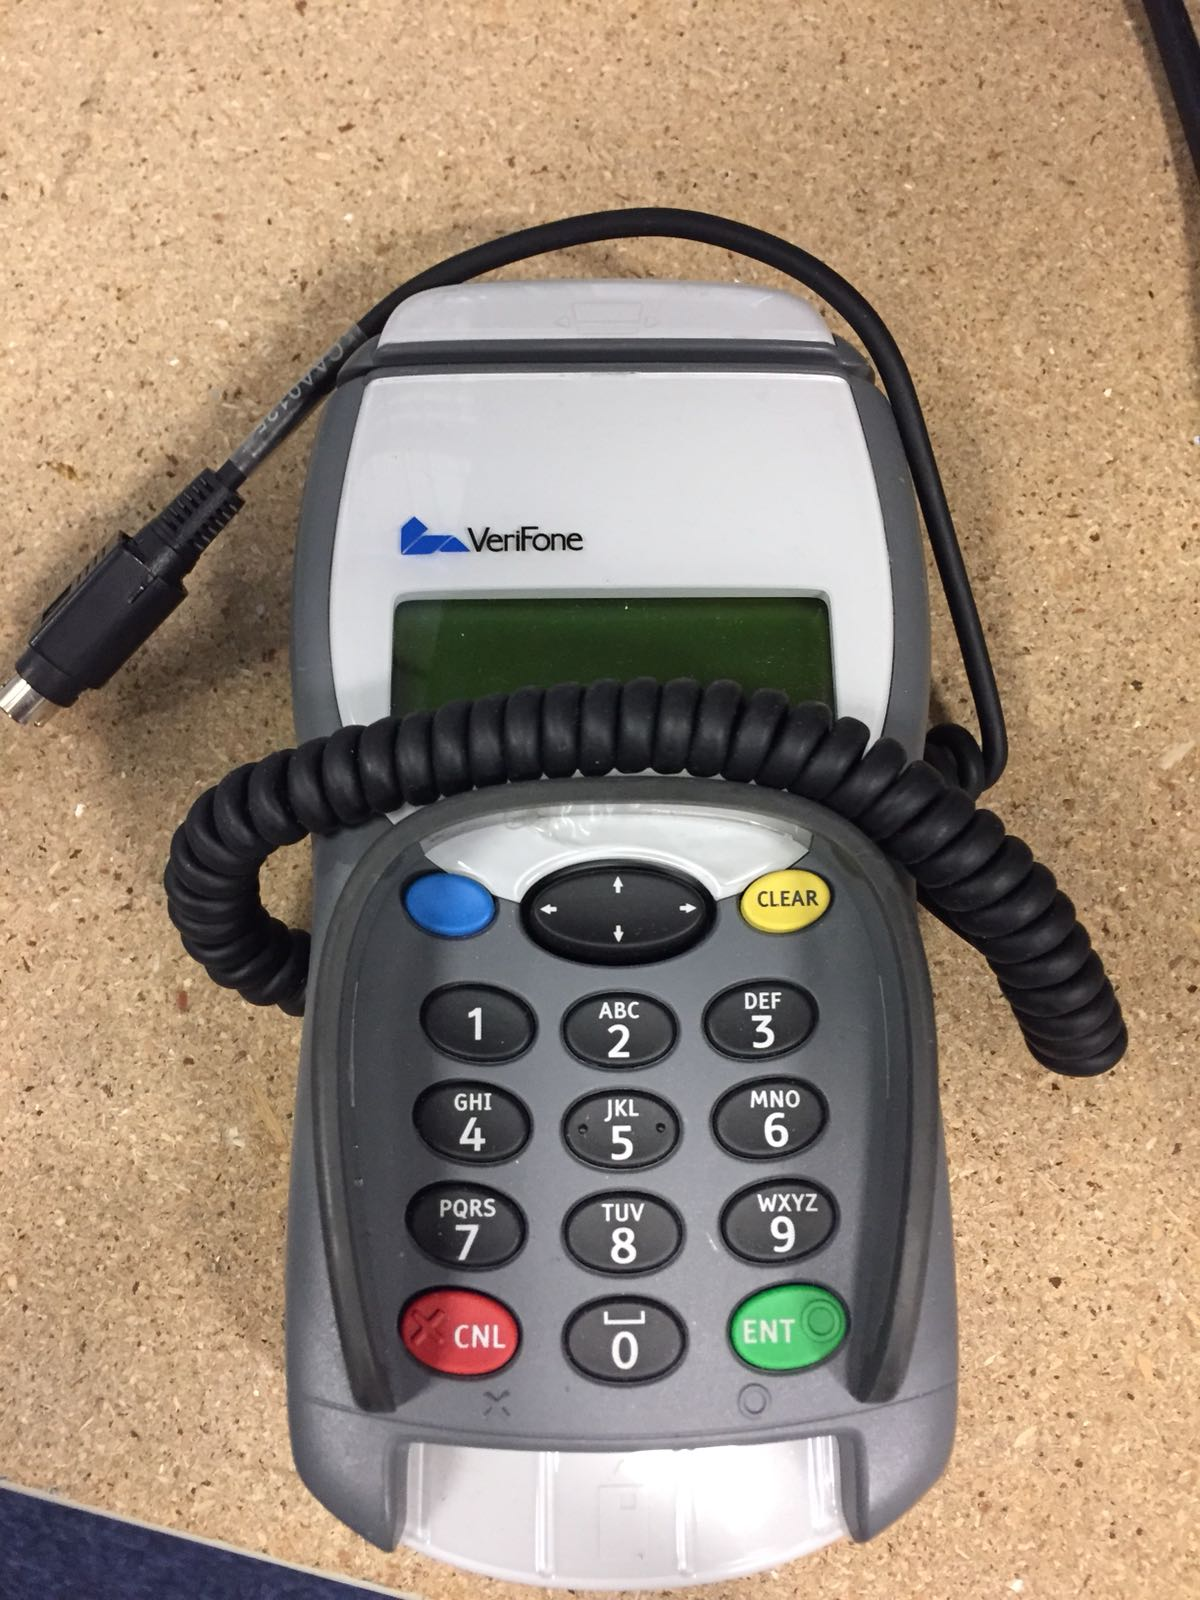 VERIFONE XLPP 979 CHIP AND PIN CARD READER